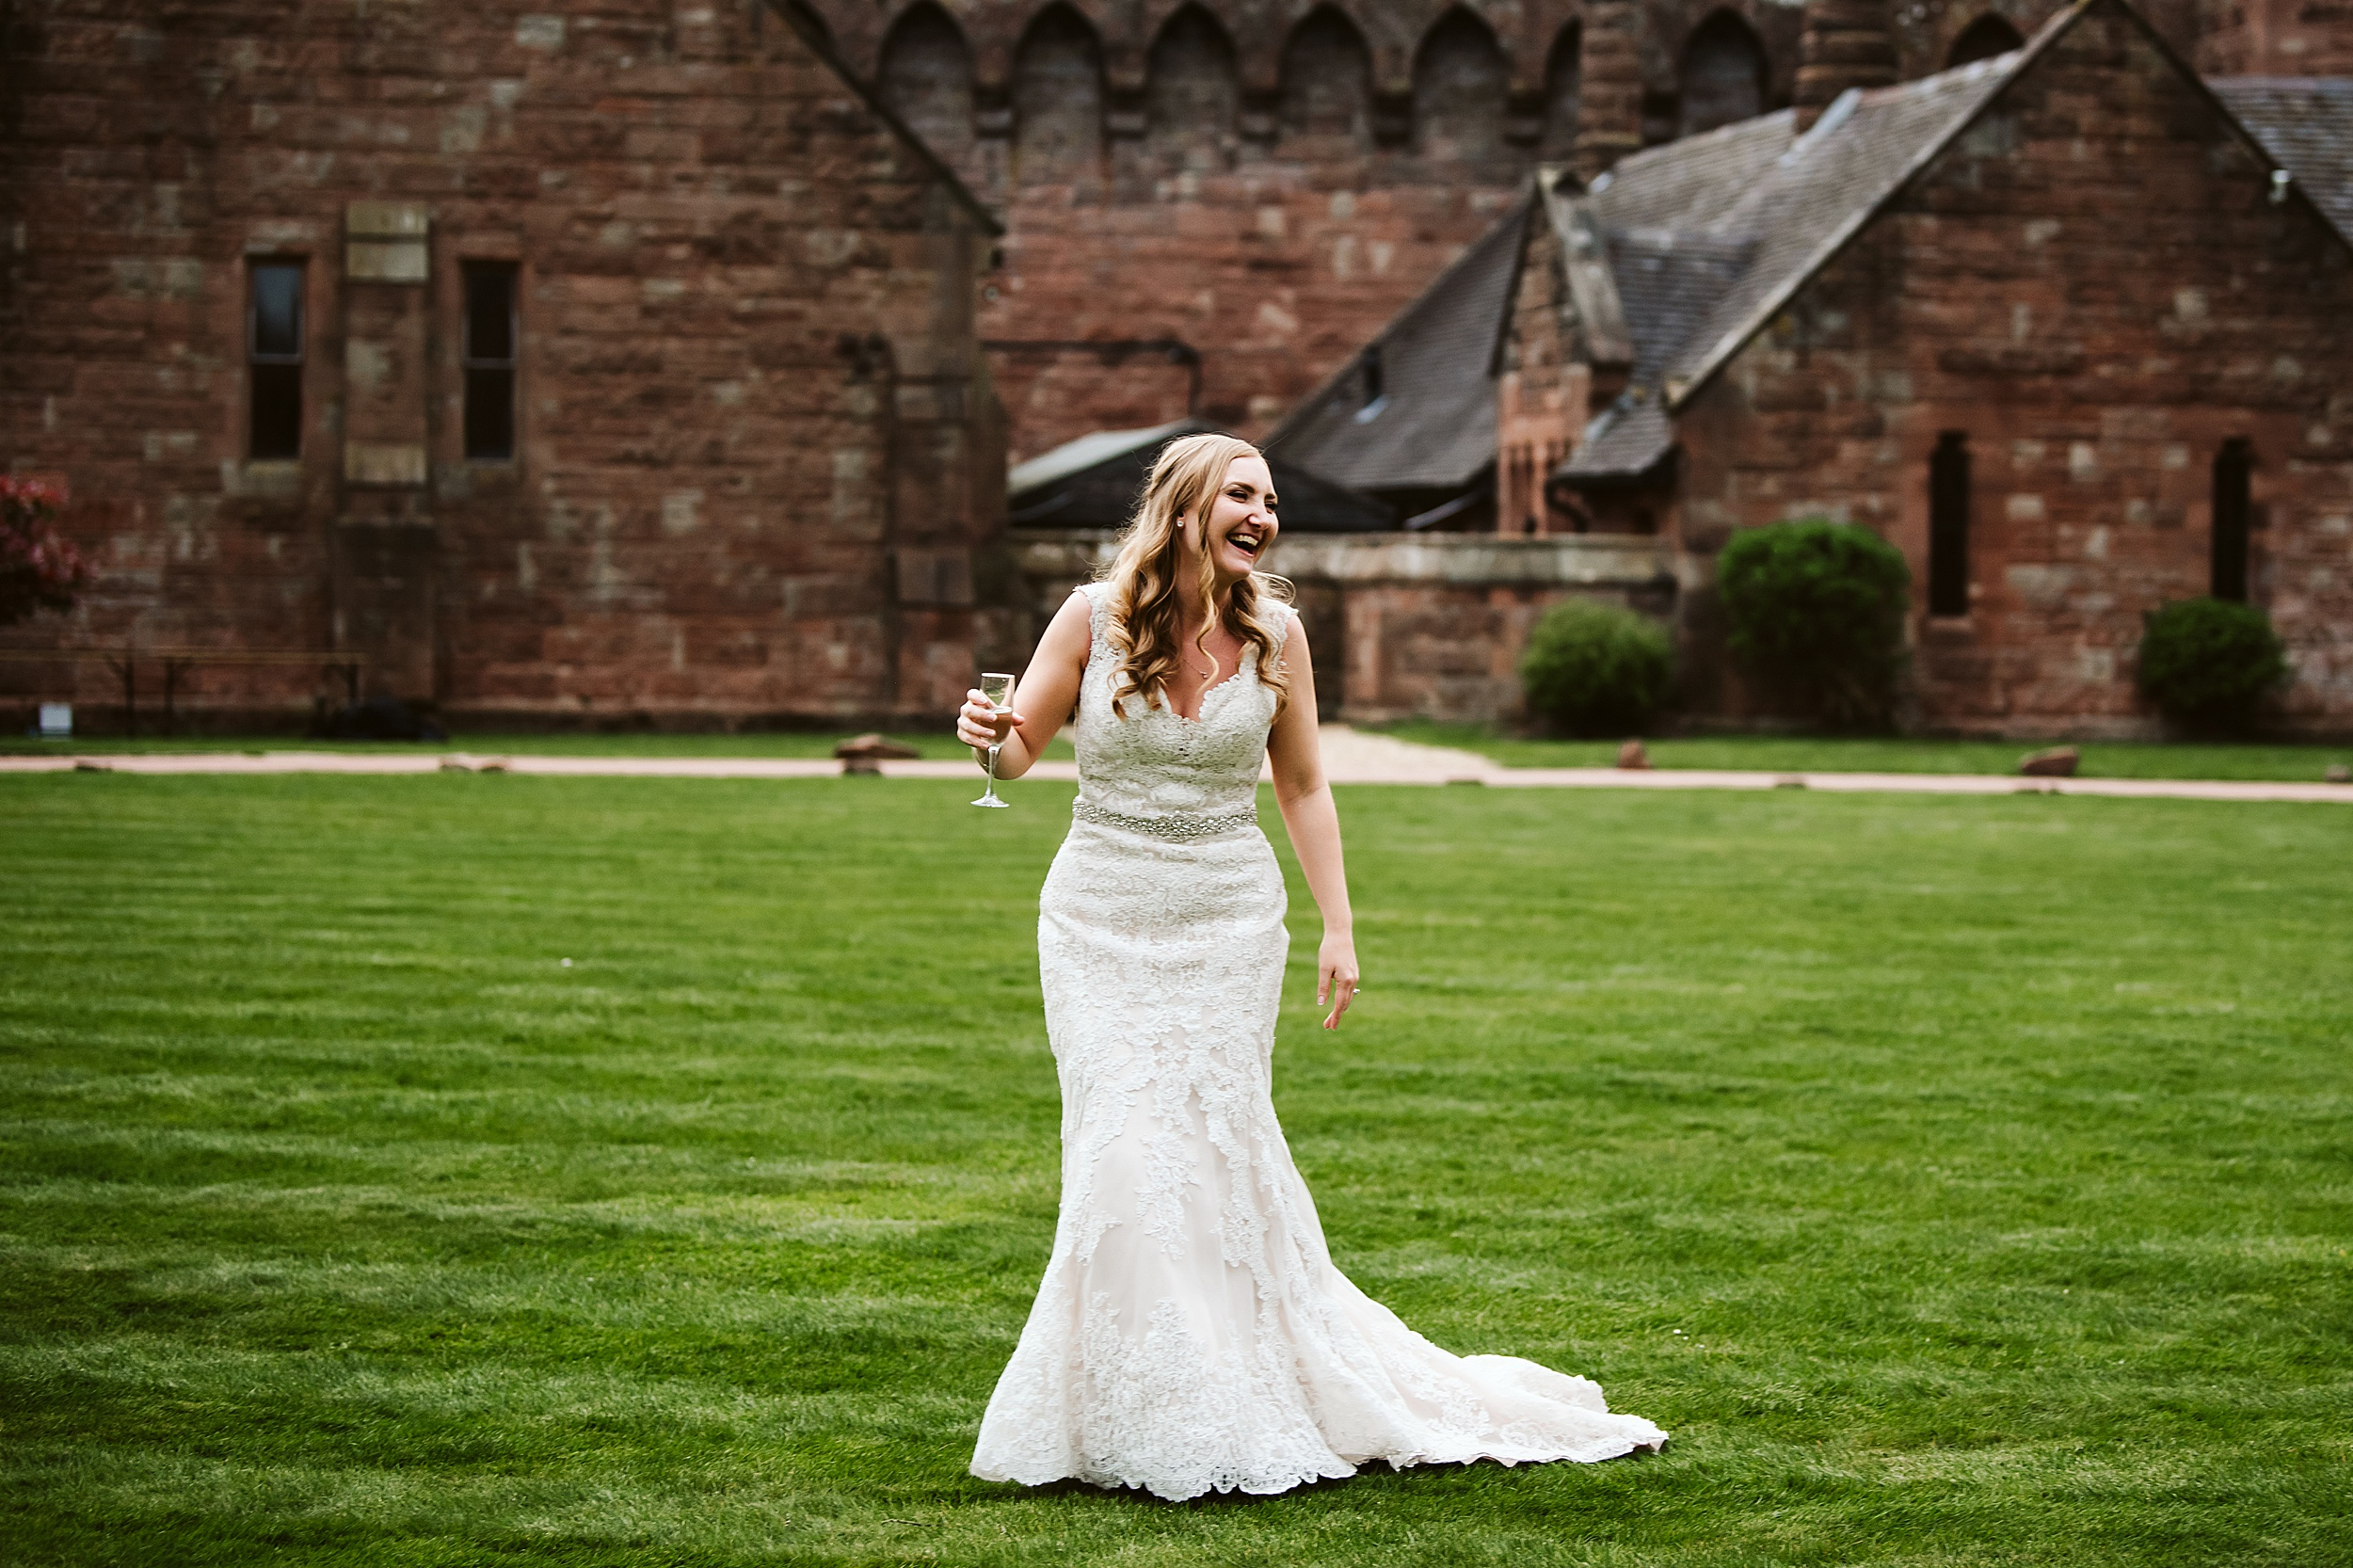 Peckforton_Castle_Cheshire_Toronto_Wedding_Photographer_UK_Destination_Wedding_0110.jpg